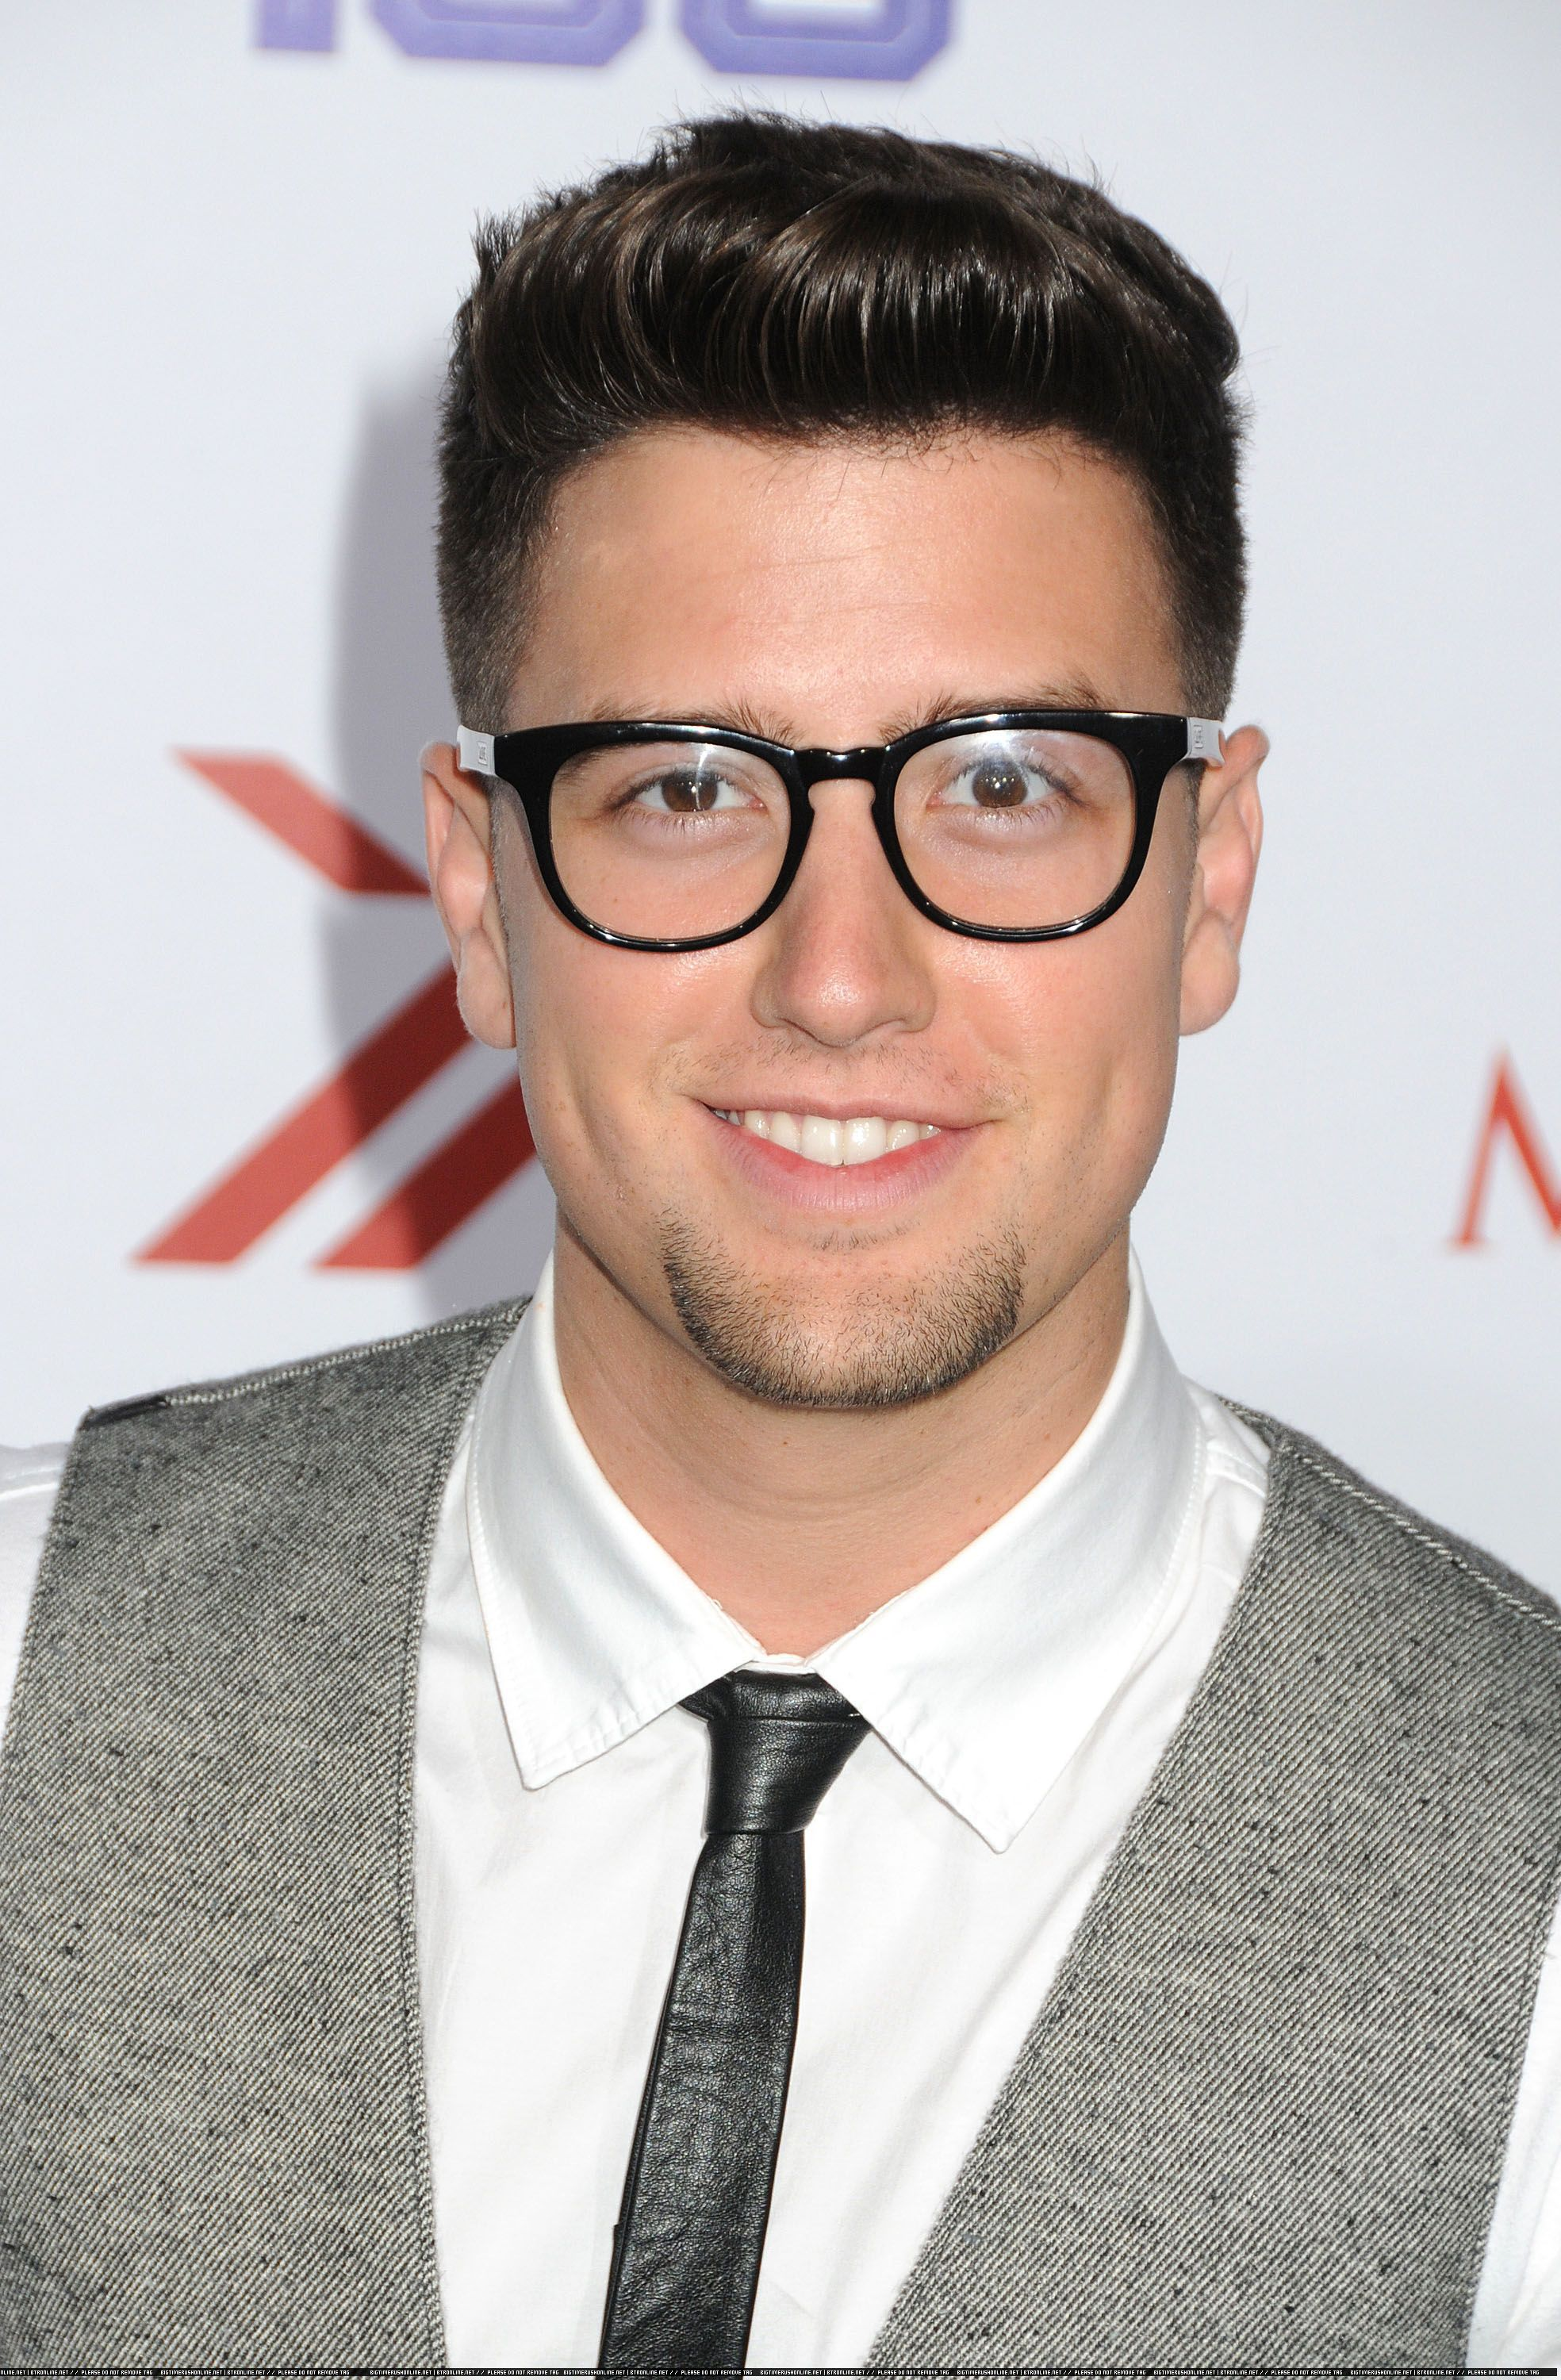 logan henderson 2014 - Google Search | Handsome Haircuts ...